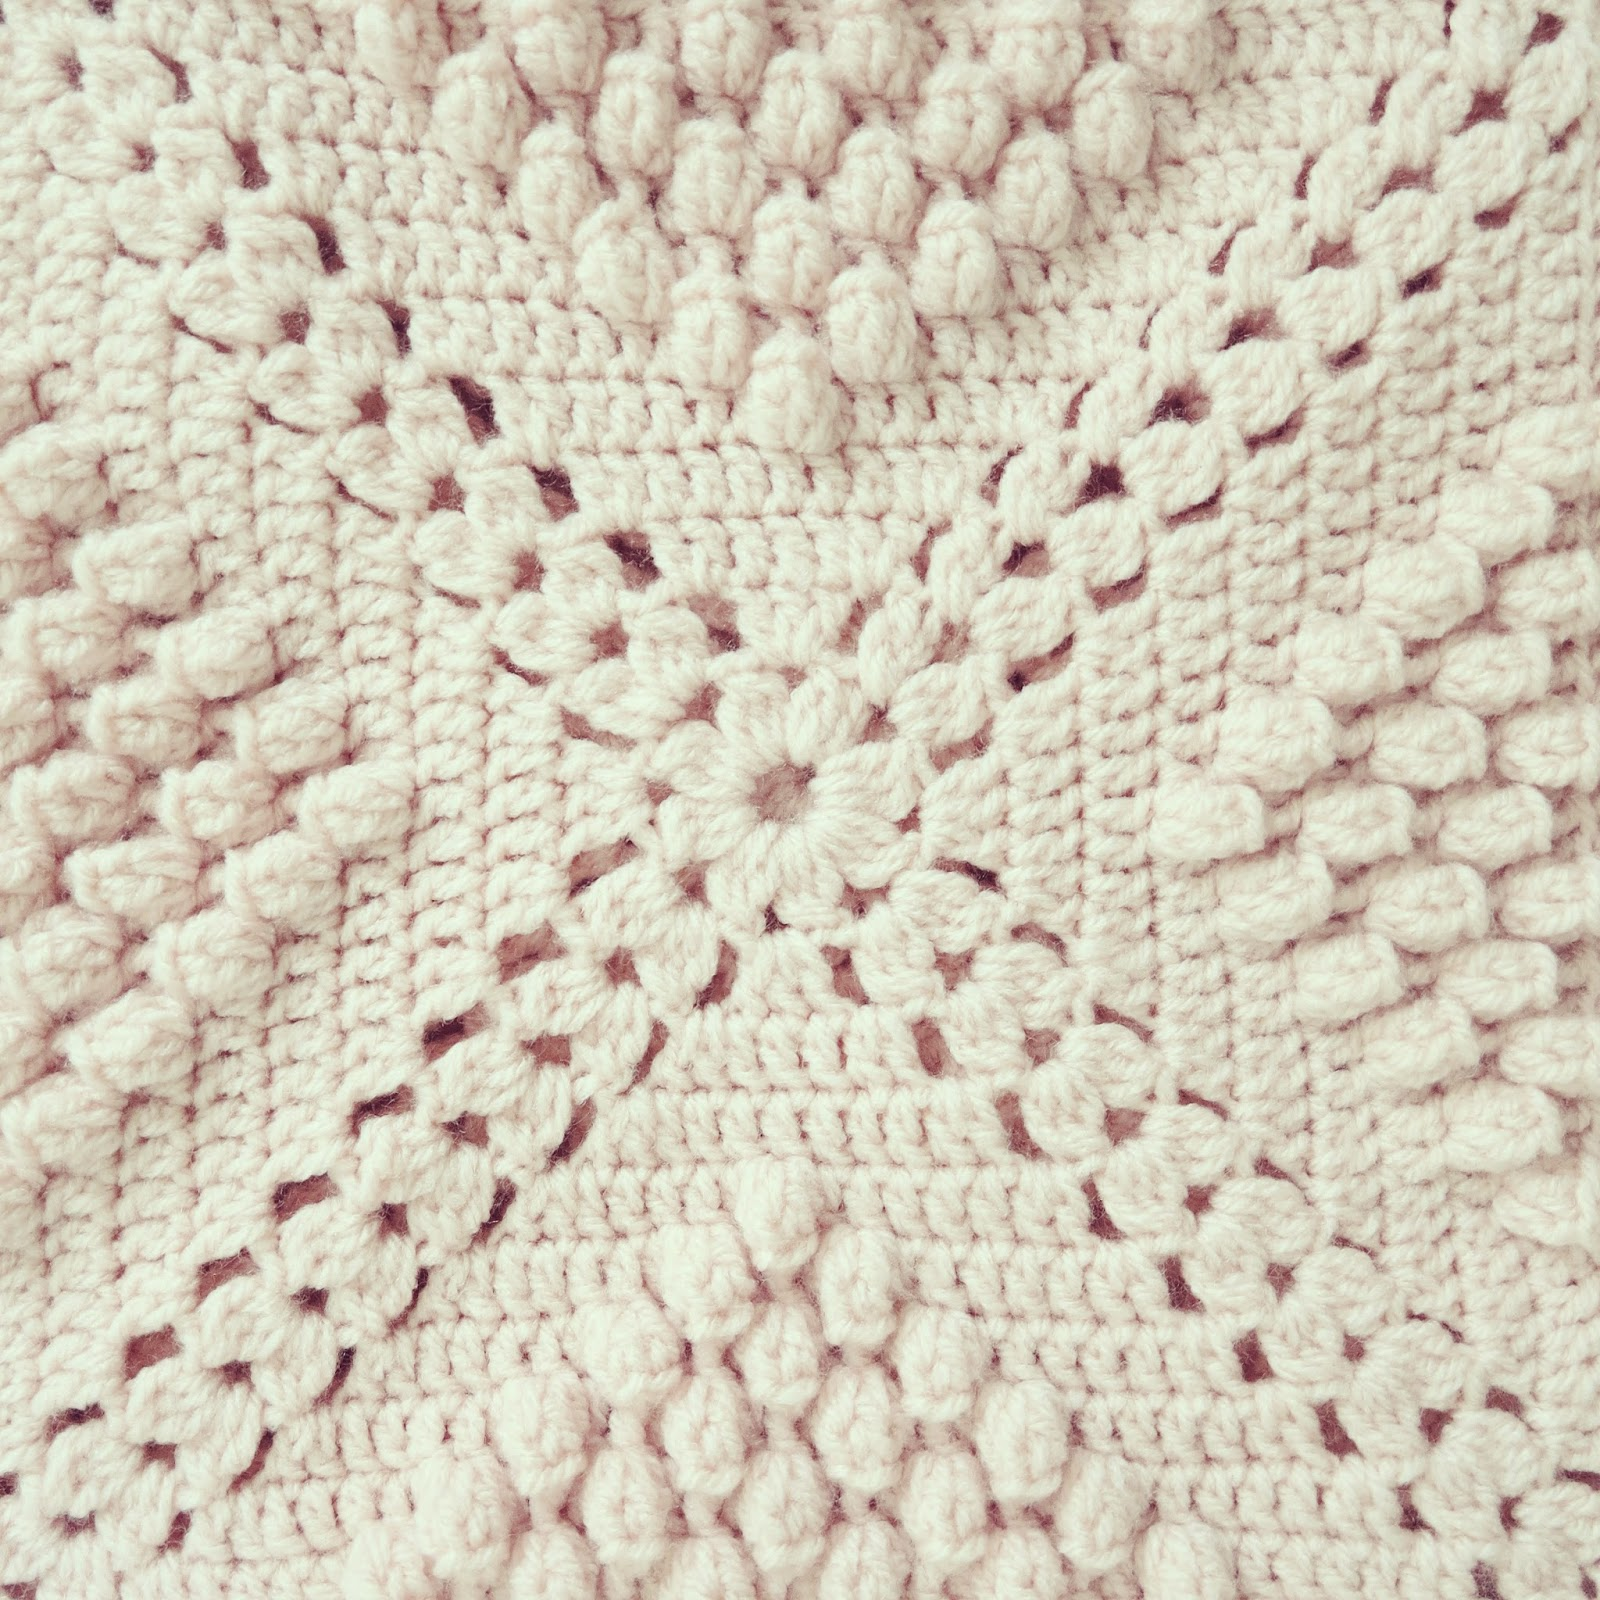 Crochet Patterns Throws : ... crochet, popcorn, bobble stitch throw, blanket, powder pink, pattern